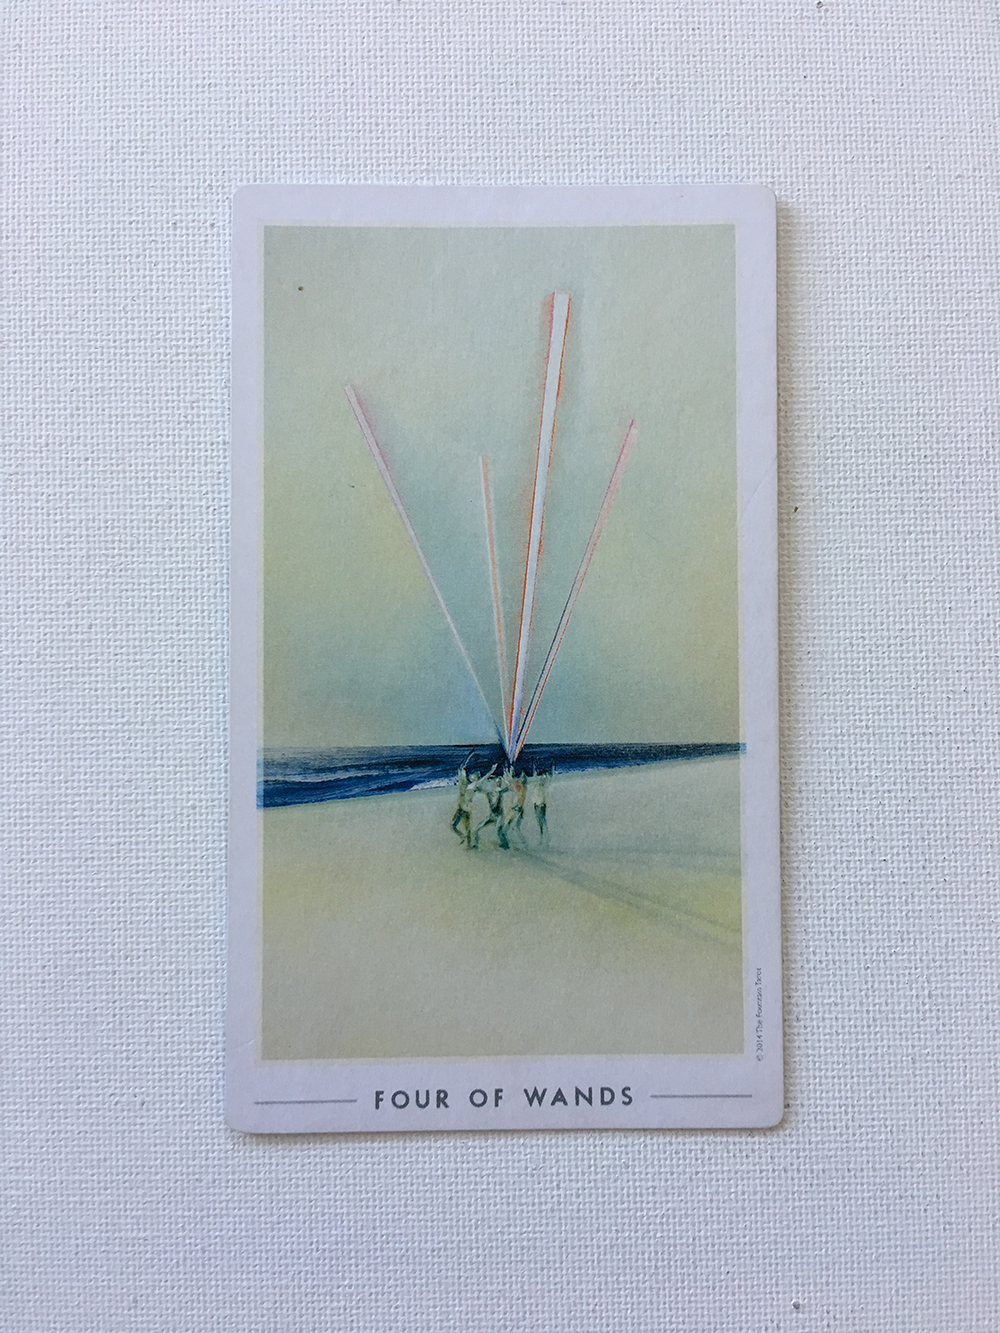 Four of Wands.